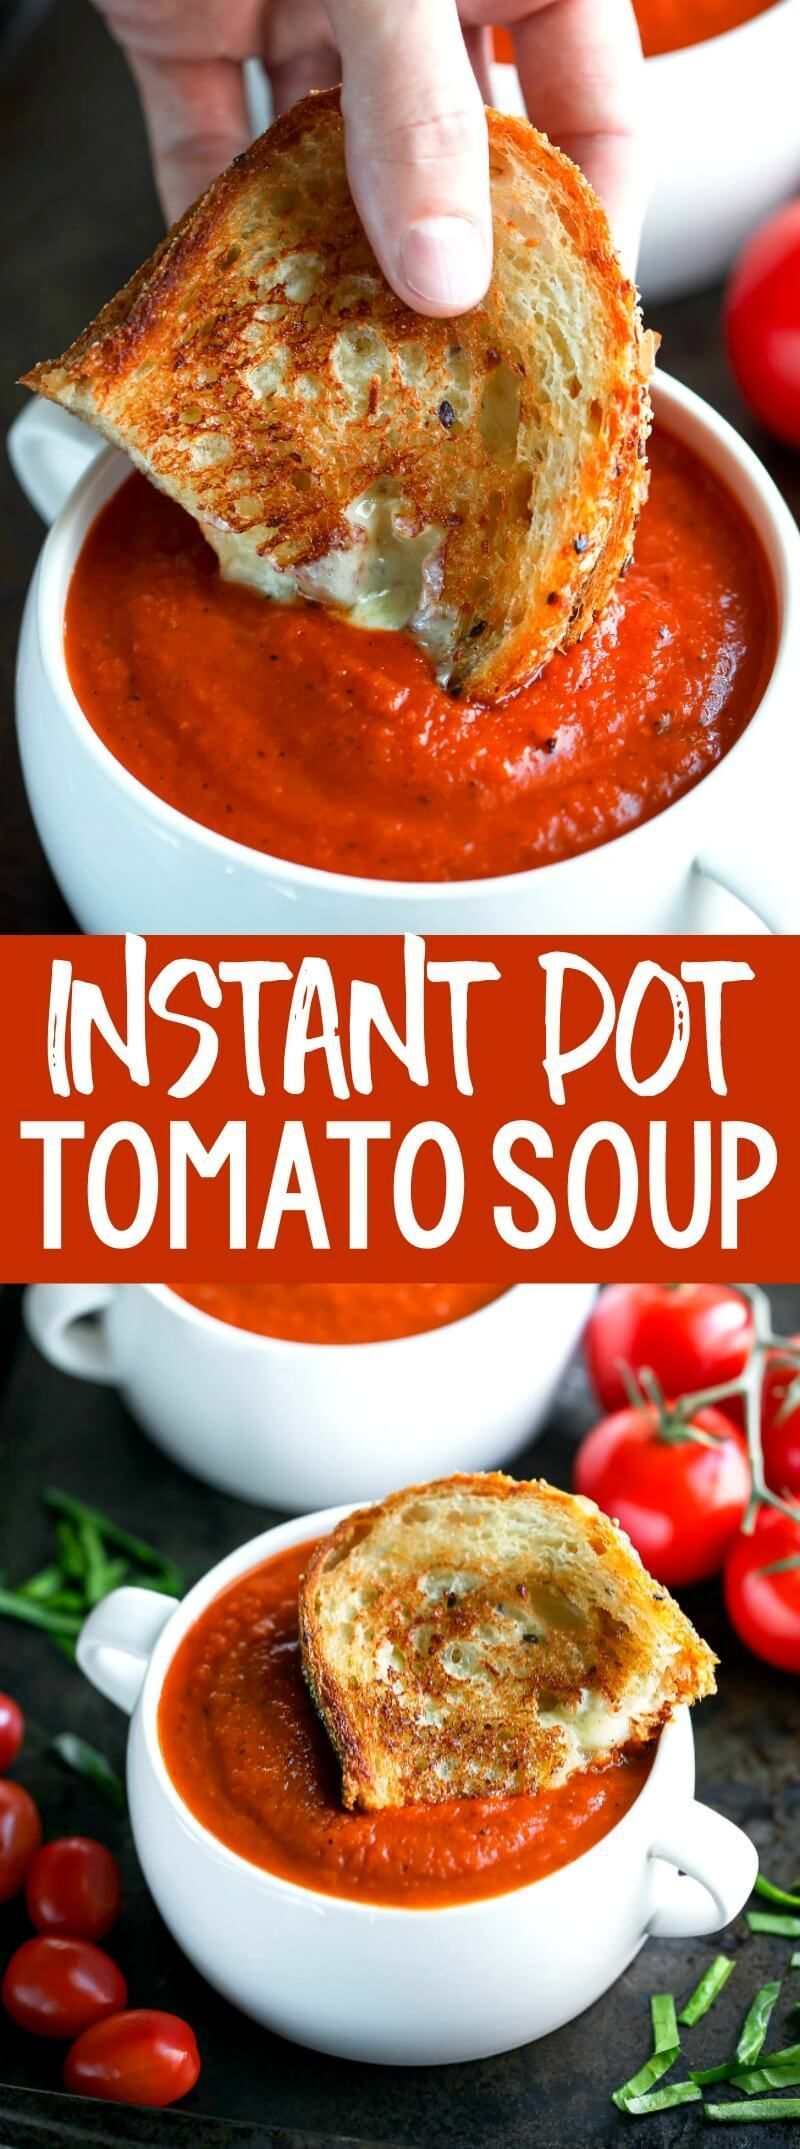 Instant Pot Tomato Soup is an easy peasy twist on a comfort food classic! The IP locks in flavor and gives this vegetarian soup a slow-simmered taste in a fraction of the time. #instantpot #pressurecooker #stovetop     The indispensable soups of our kitchen gain importance with the cooling of the weather. So what are the benefits of drinking soup? Here are the benefits of drinking soup from experts of the subject, an... #classic #comfort #Easy #Food #Instant #peasy #Pot #Soup #Tomato #Twist